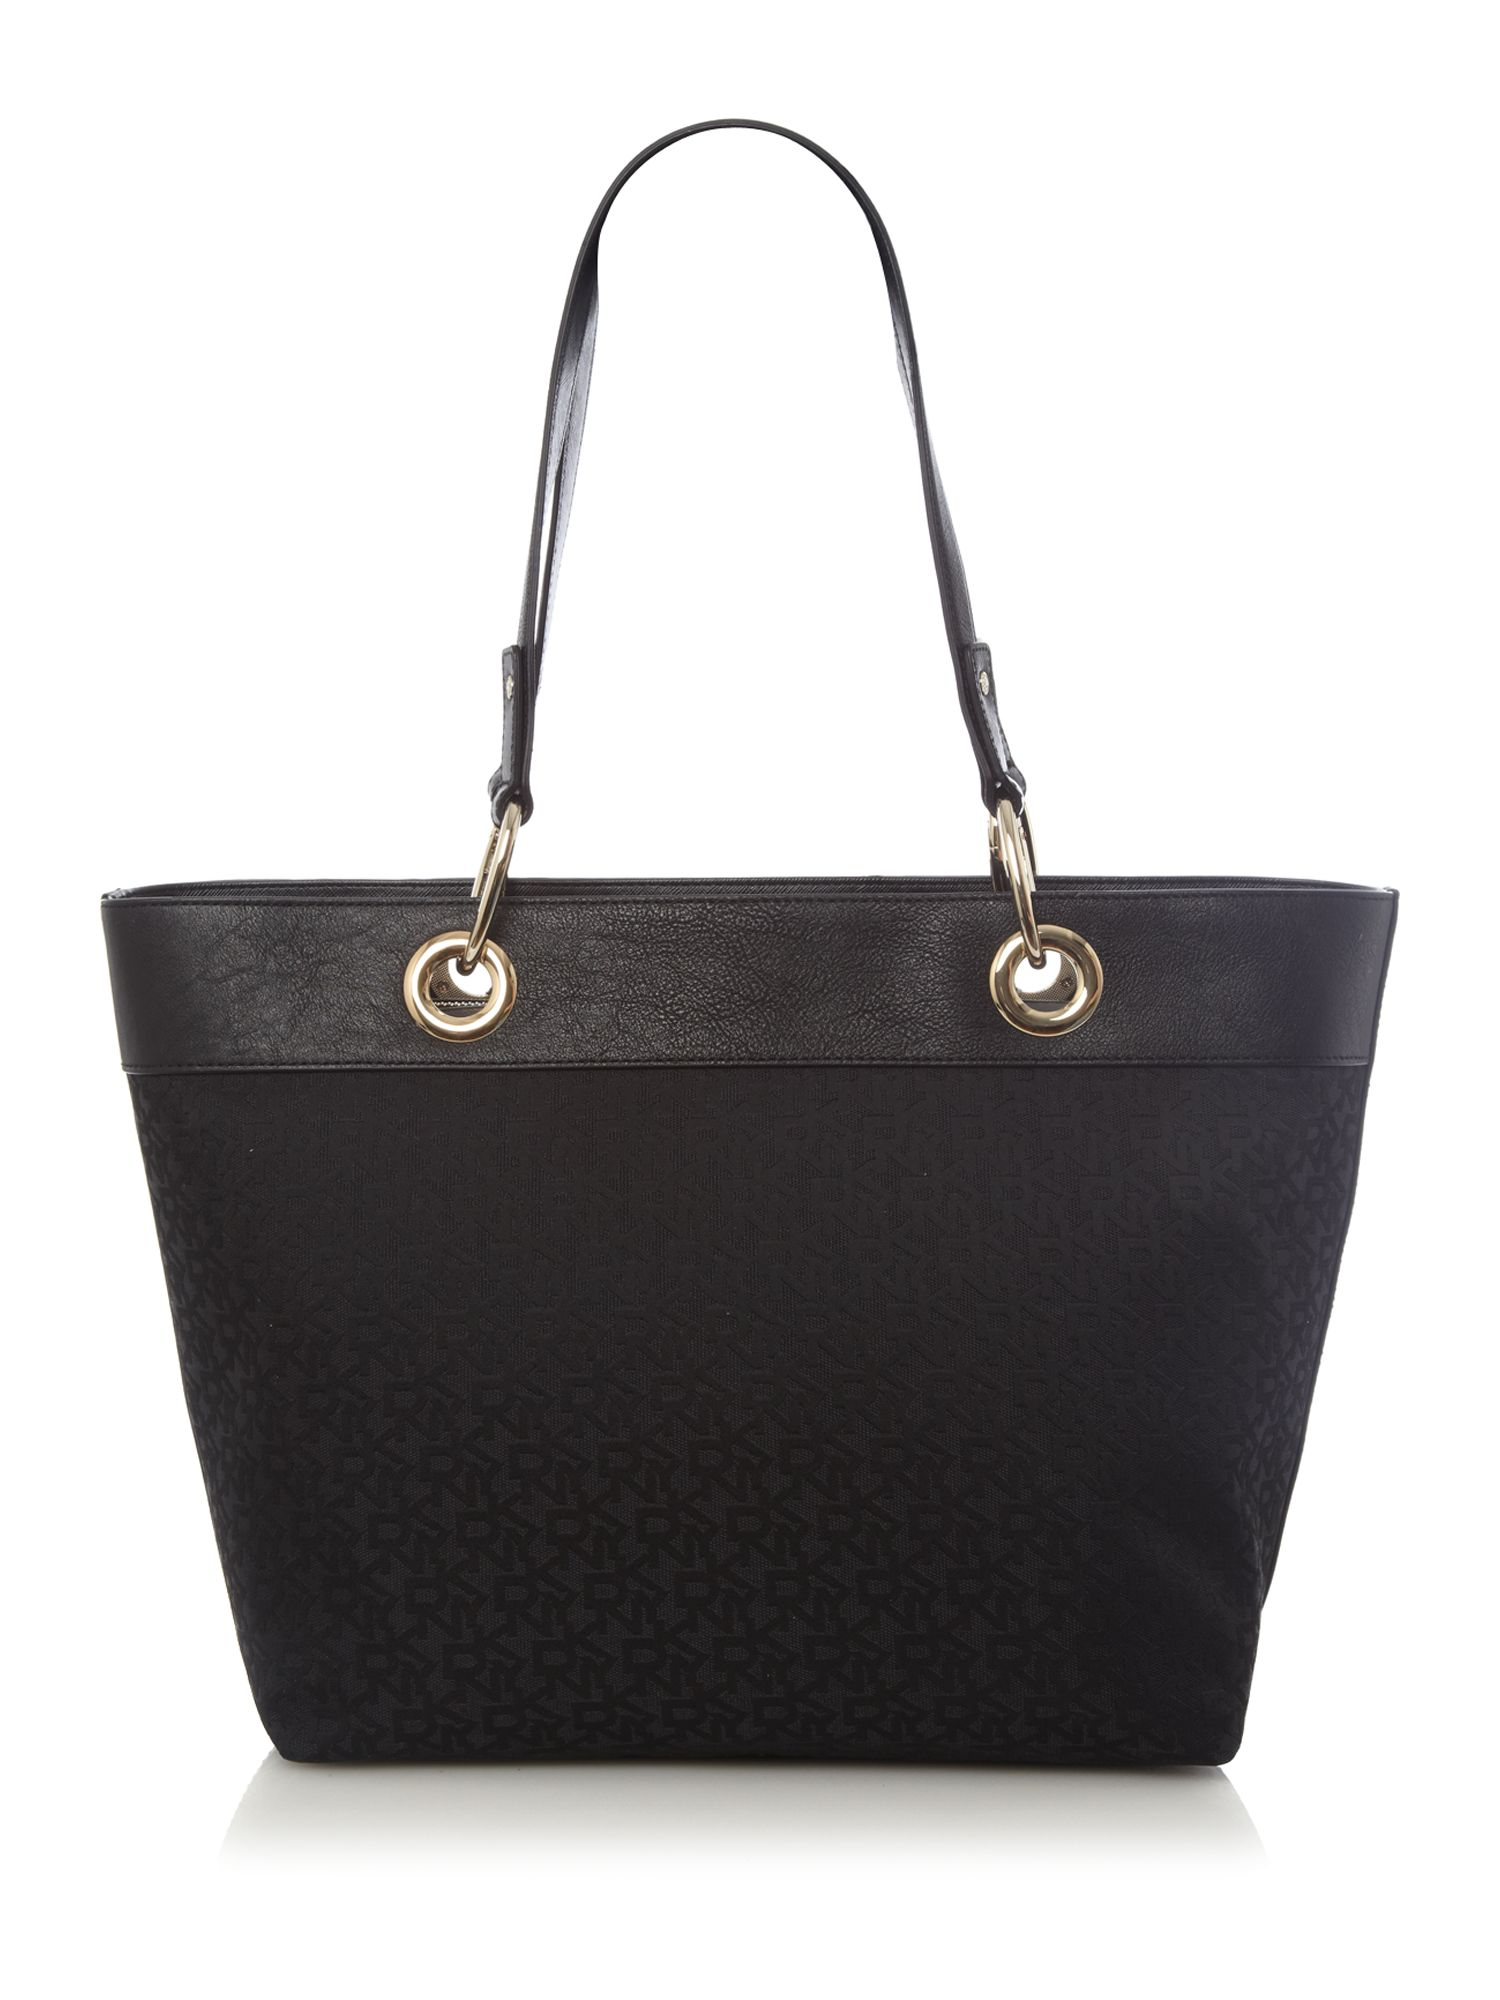 dkny scarf bag tote in black lyst